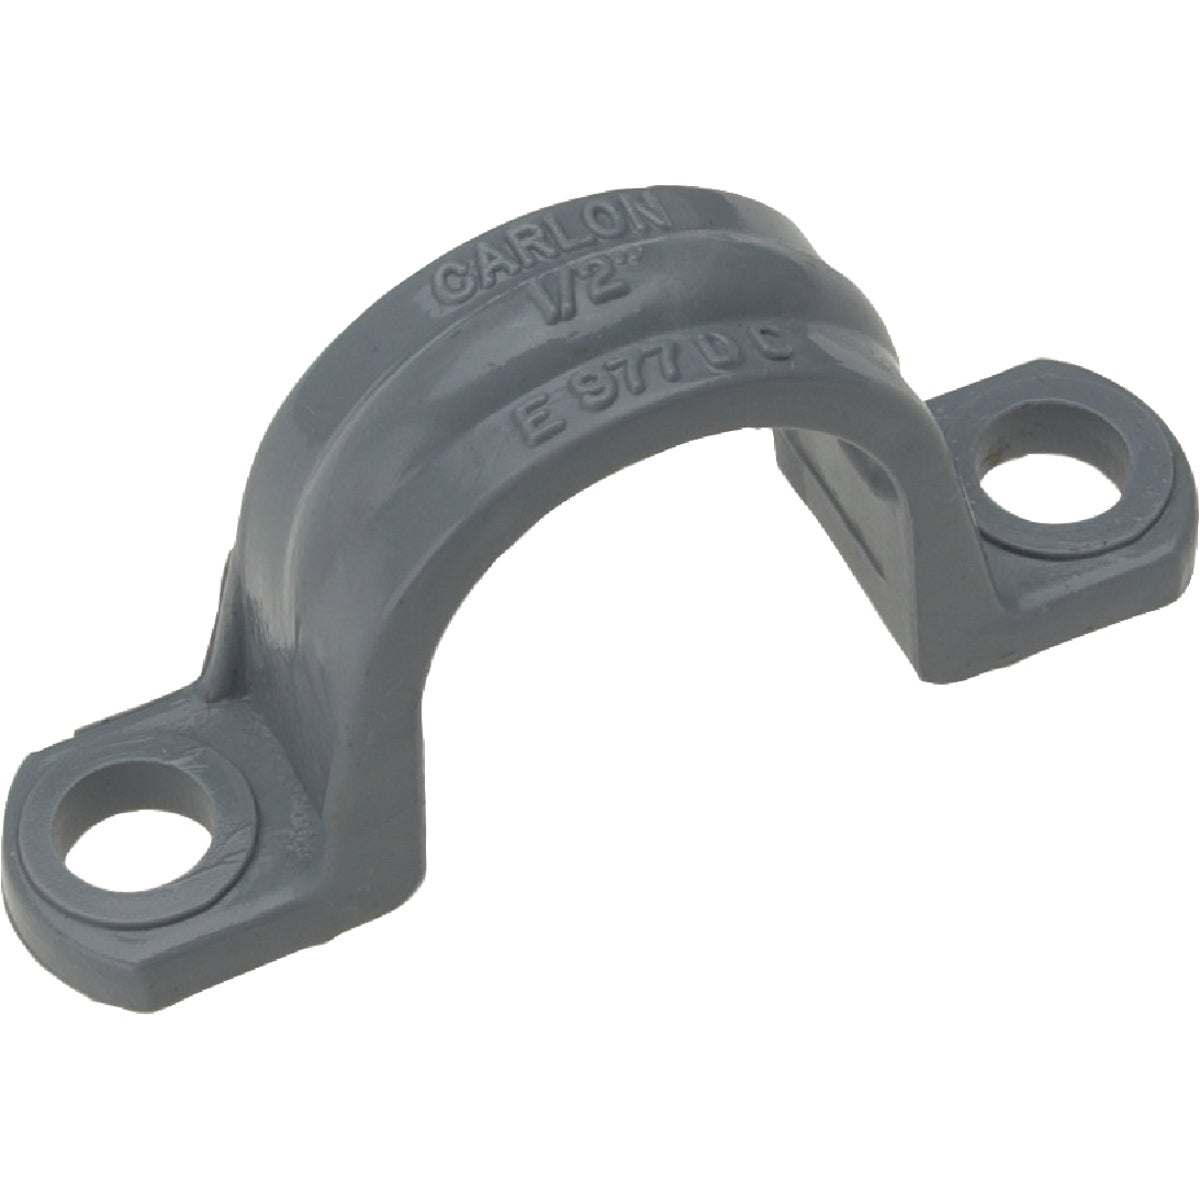 "5 PK 2"" PVC STRAP - E977JCRCTN by Thomas & Betts"